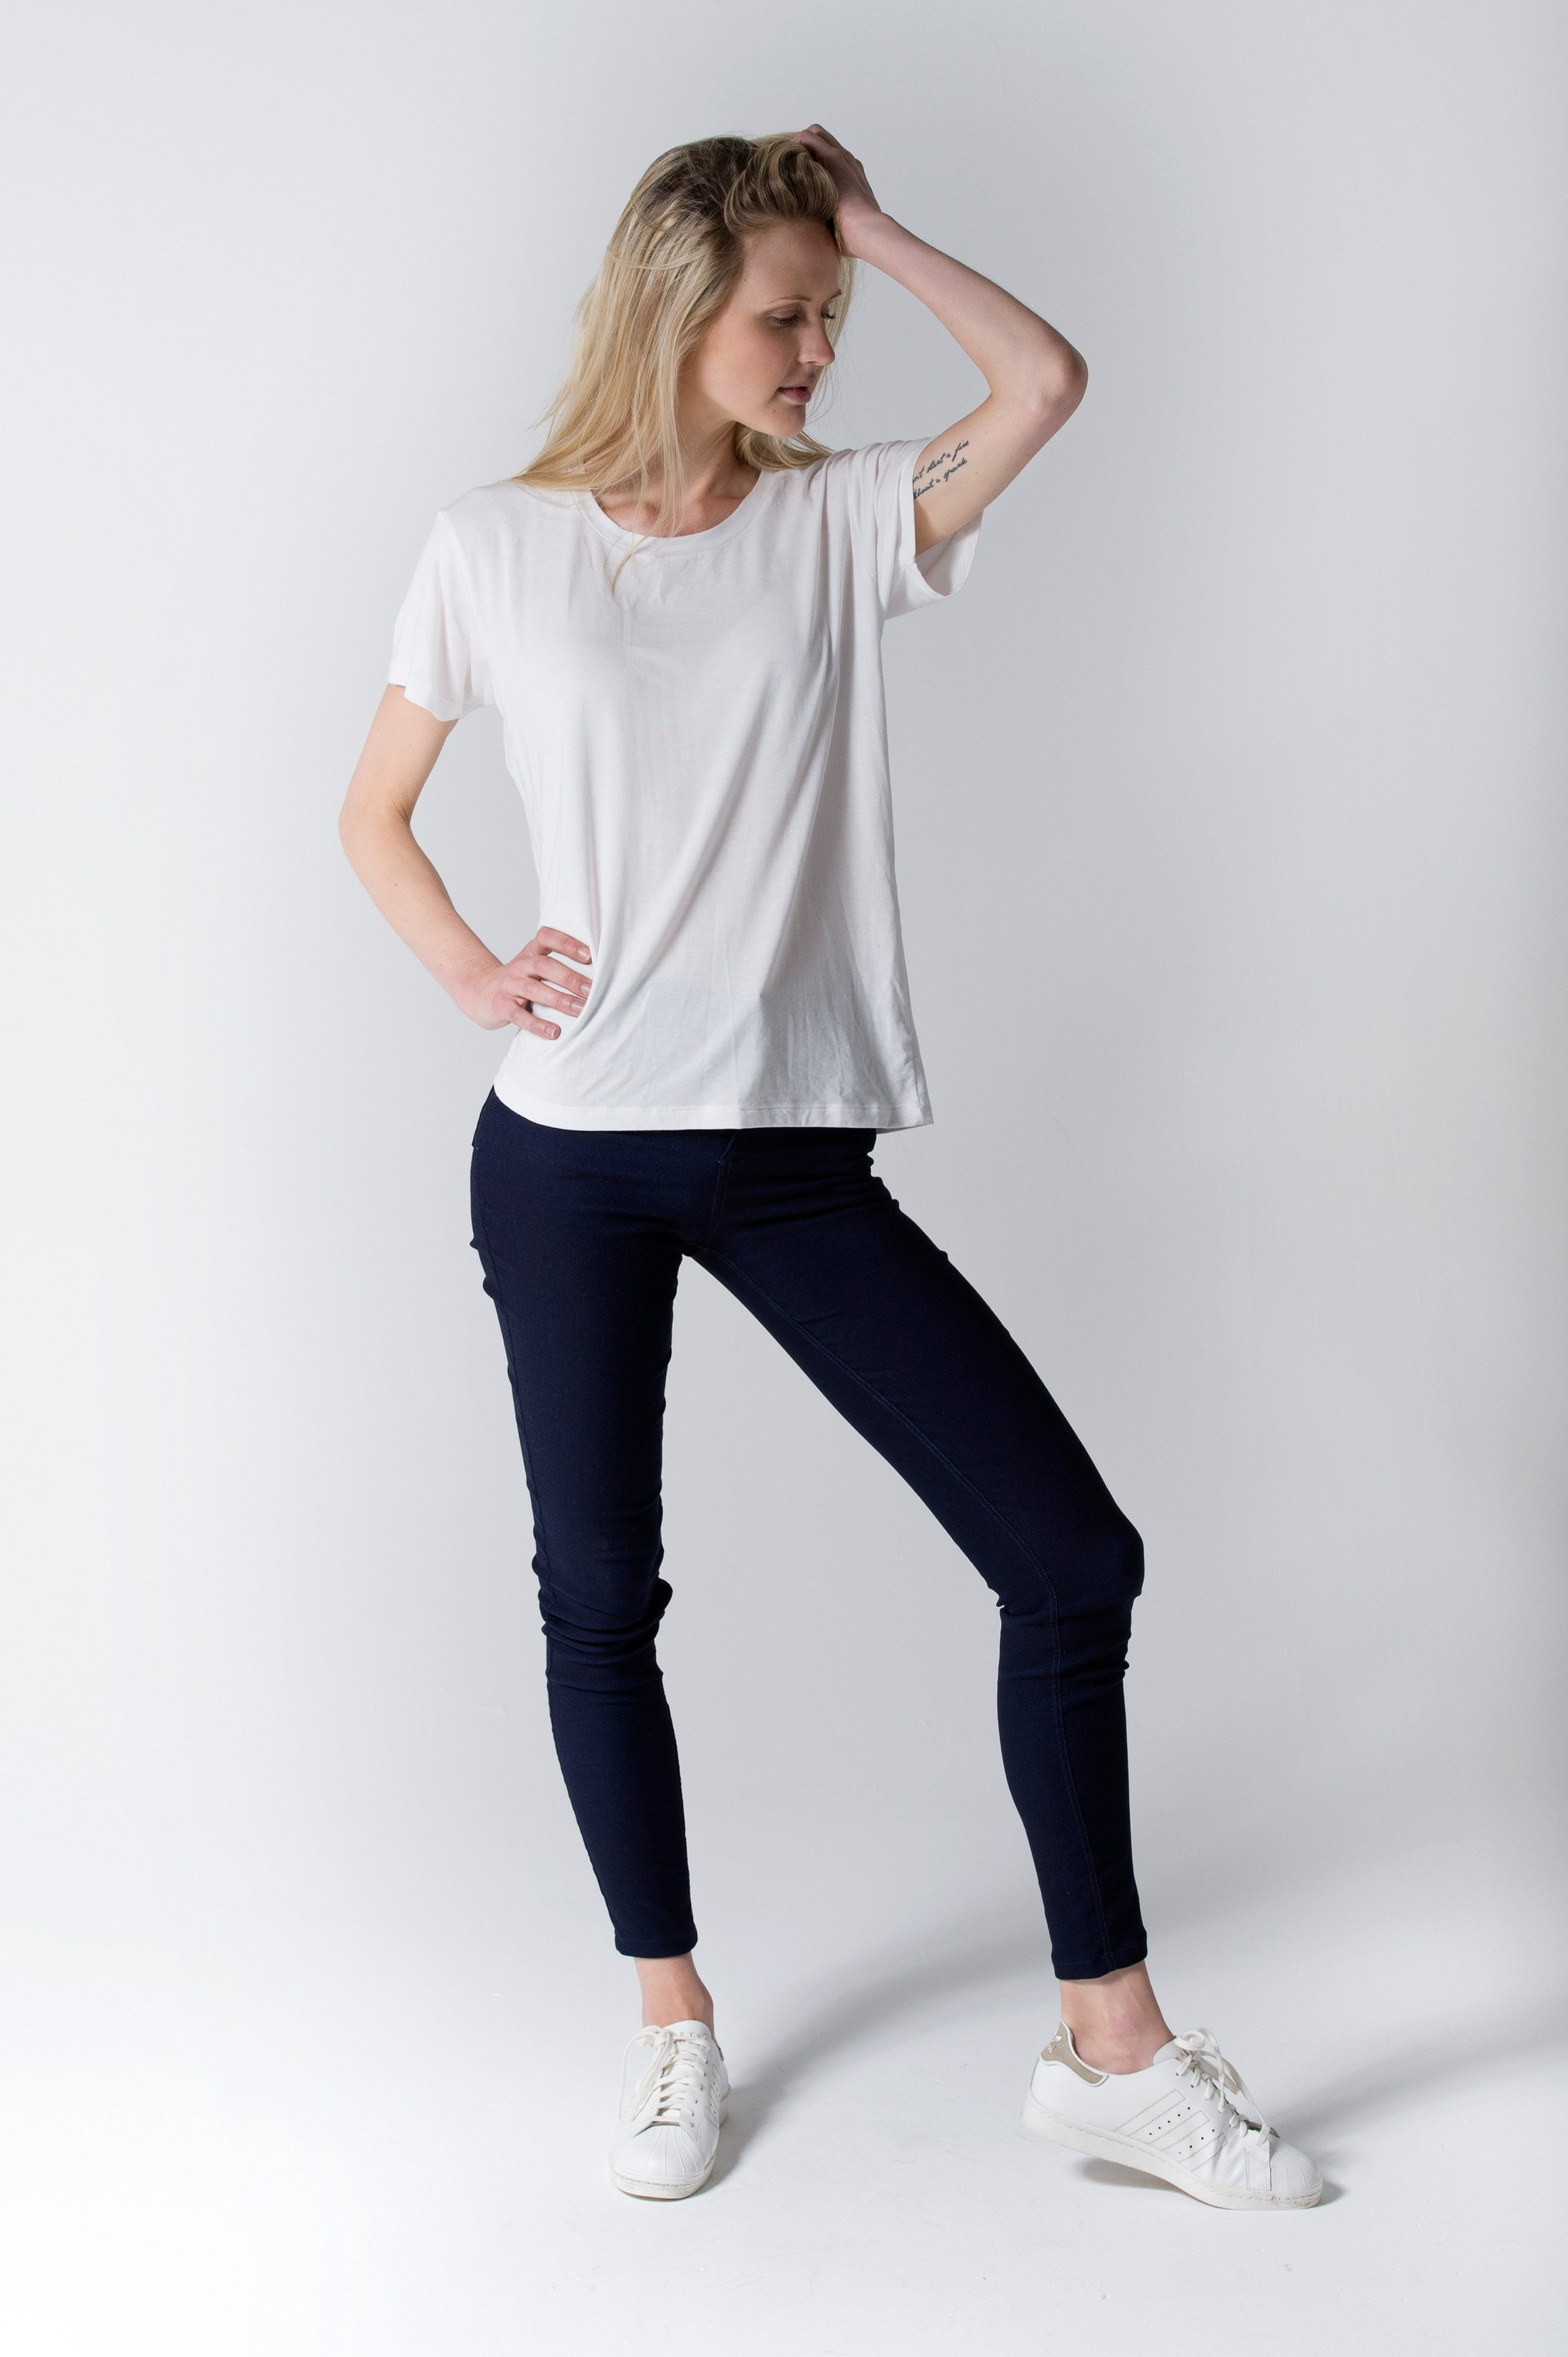 WHITE TEE | $54 - This super soft, slinky tee will be a workhorse with jeans, shorts, or layered under a blazer to the office. The elongated body allows you to wear the tee with leggings for coverage or tuck it into jeans or a pencil skirt.